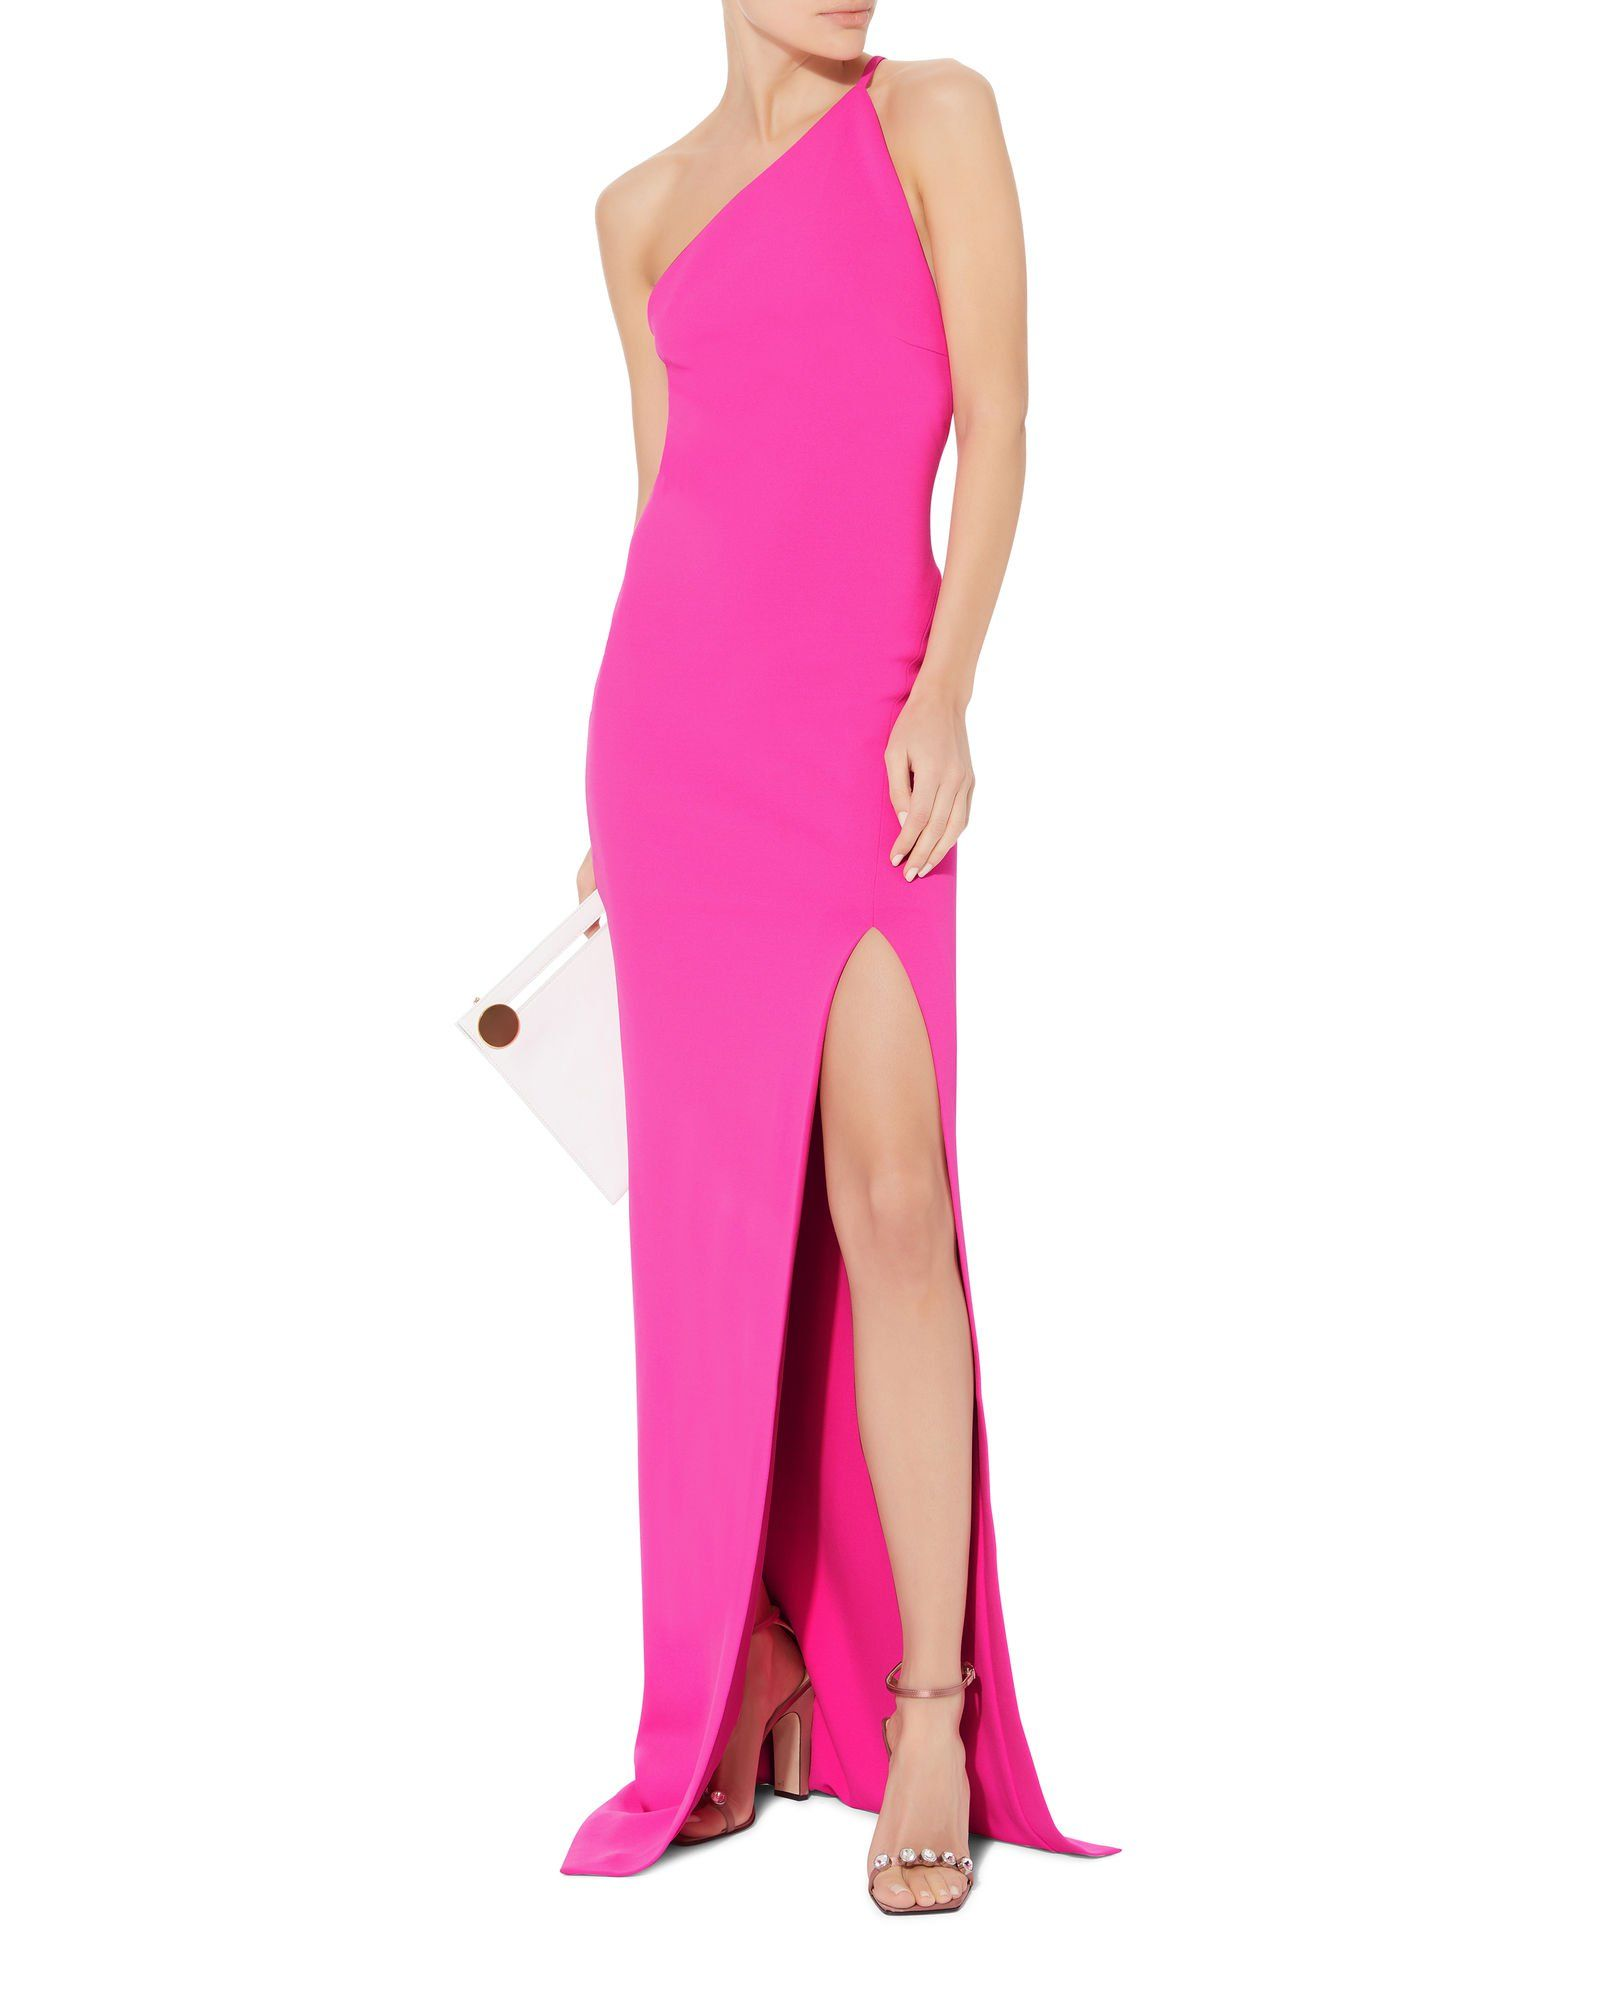 073fe4a18efc8 Petch Pink Gown, PINK, hi-res   clothes, shoes & accessories   Pink ...